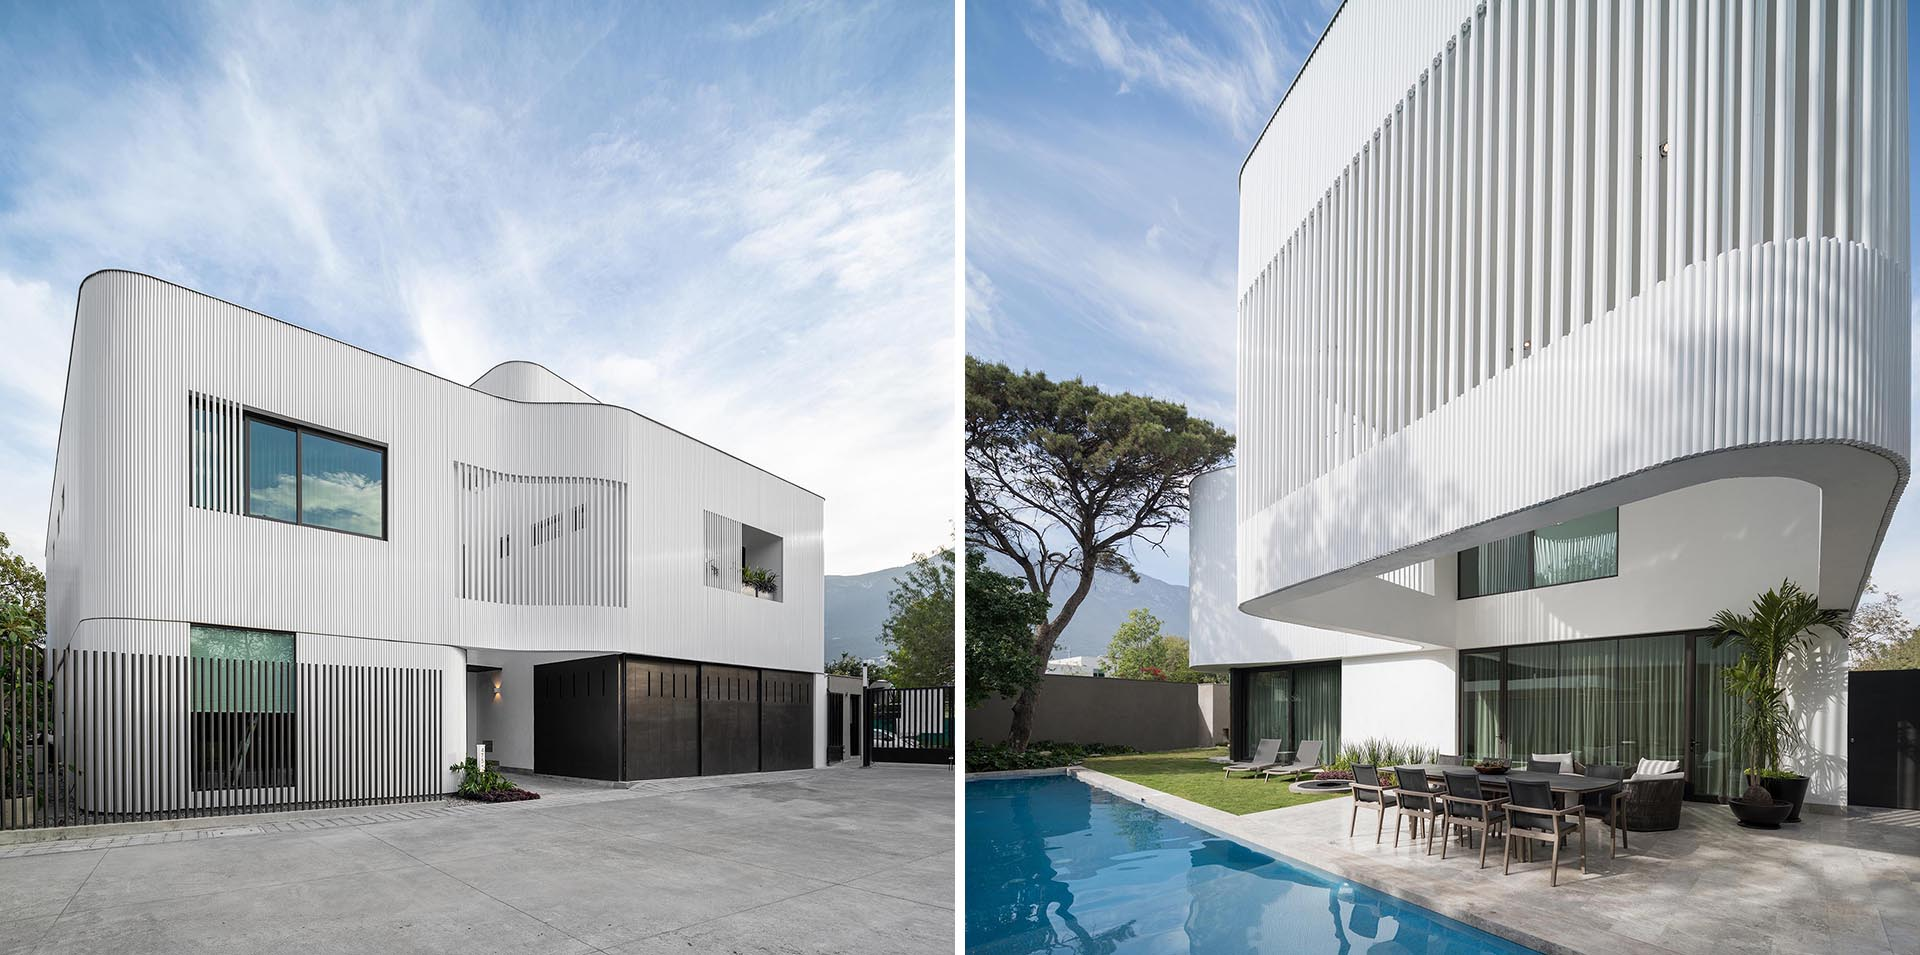 The metal pipes create a screen on the exterior of this modern house, and serve as a rainscreen for the solid walls, act as privacy and shading for selected windows